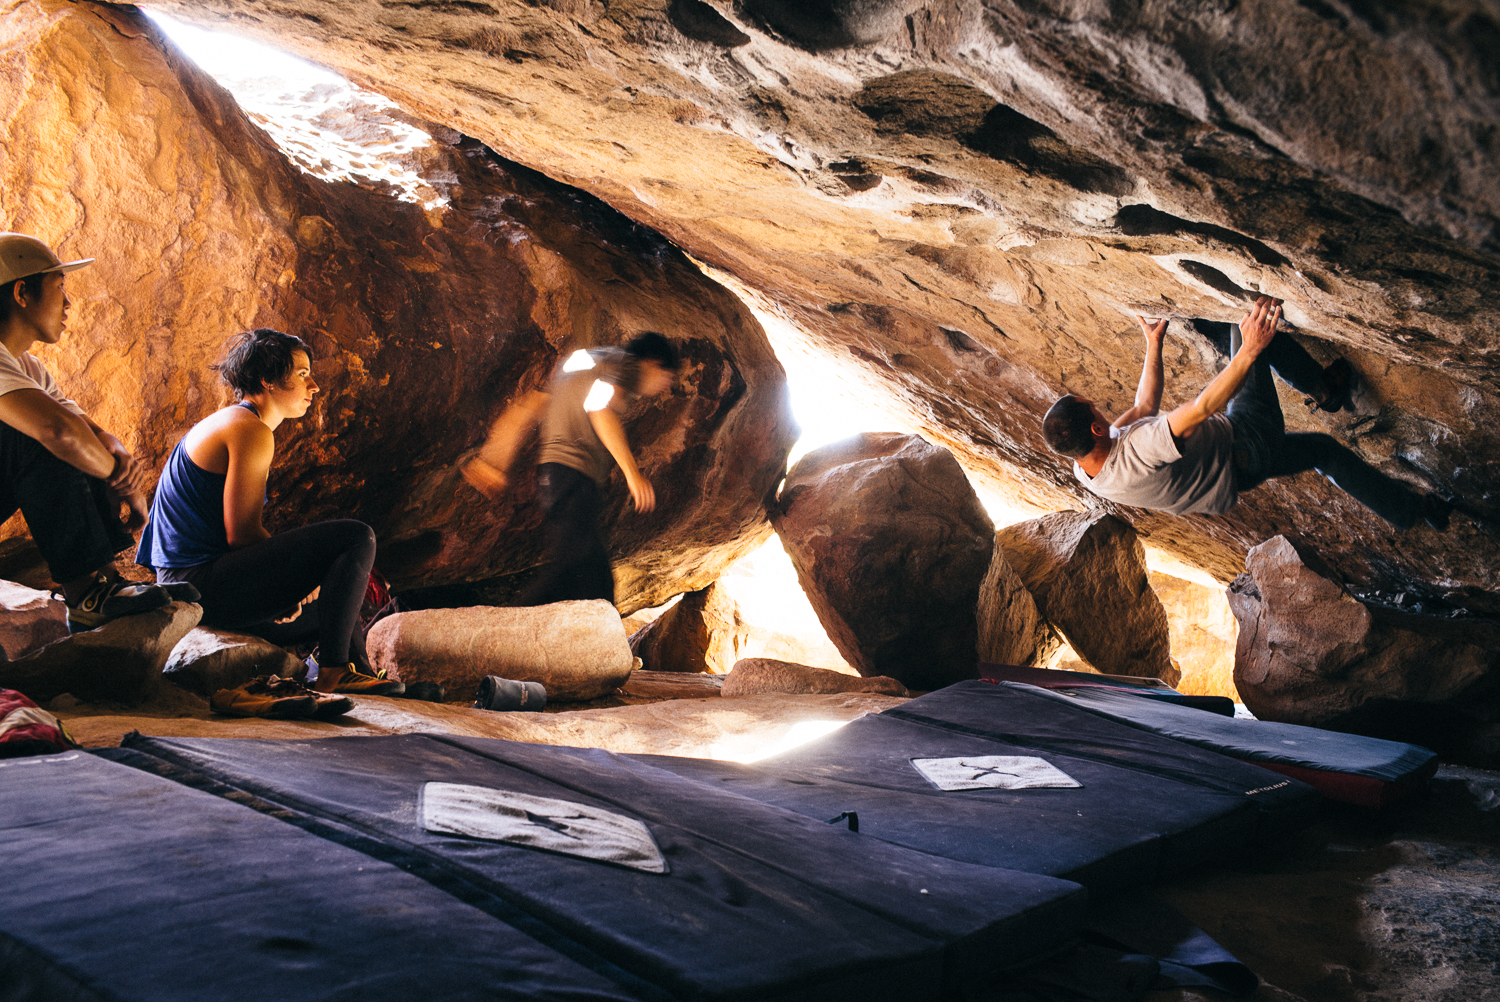 Alex finishing (sending) Martini, a V4 roof problem in a cave of Hueco Tanks, Texas. Pictured left to right: Ben Lim, Caitlin Wolters, Alex Lin, and Jeff Miller. Michael Lim Photography 2015 ©